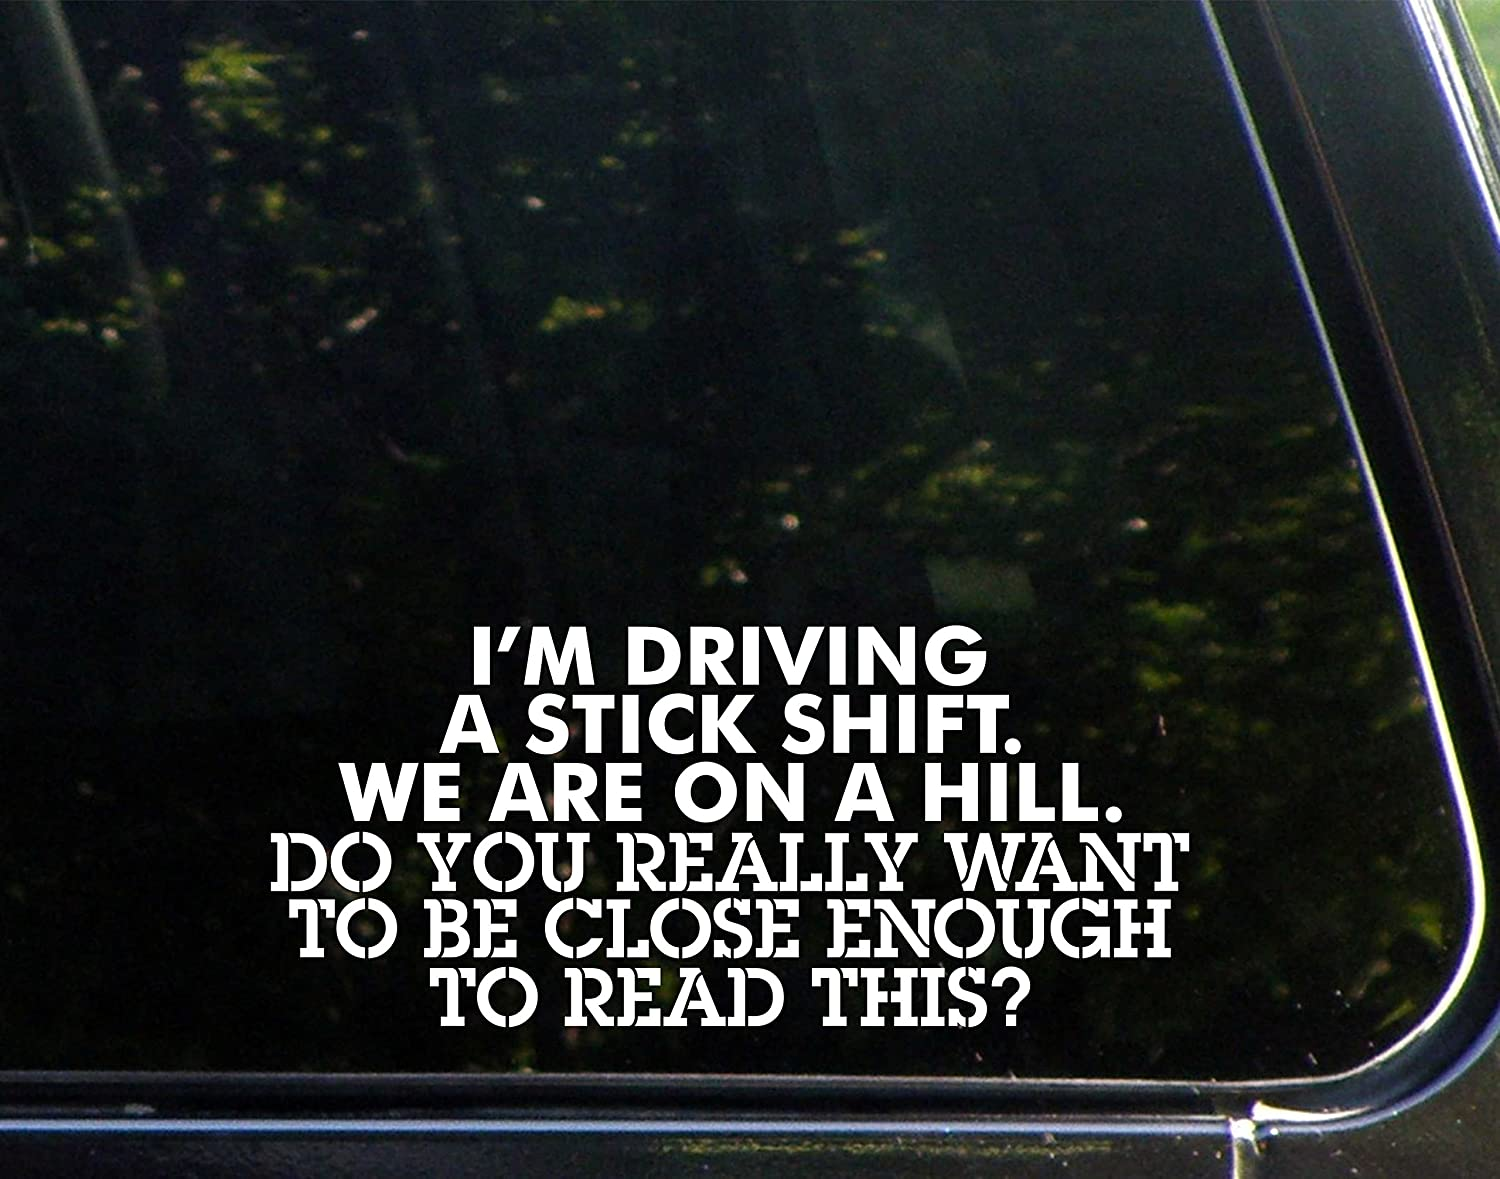 Amazoncom Im Driving A Stick Shift Were On A Hill Do You - How to make vinyl decals off car